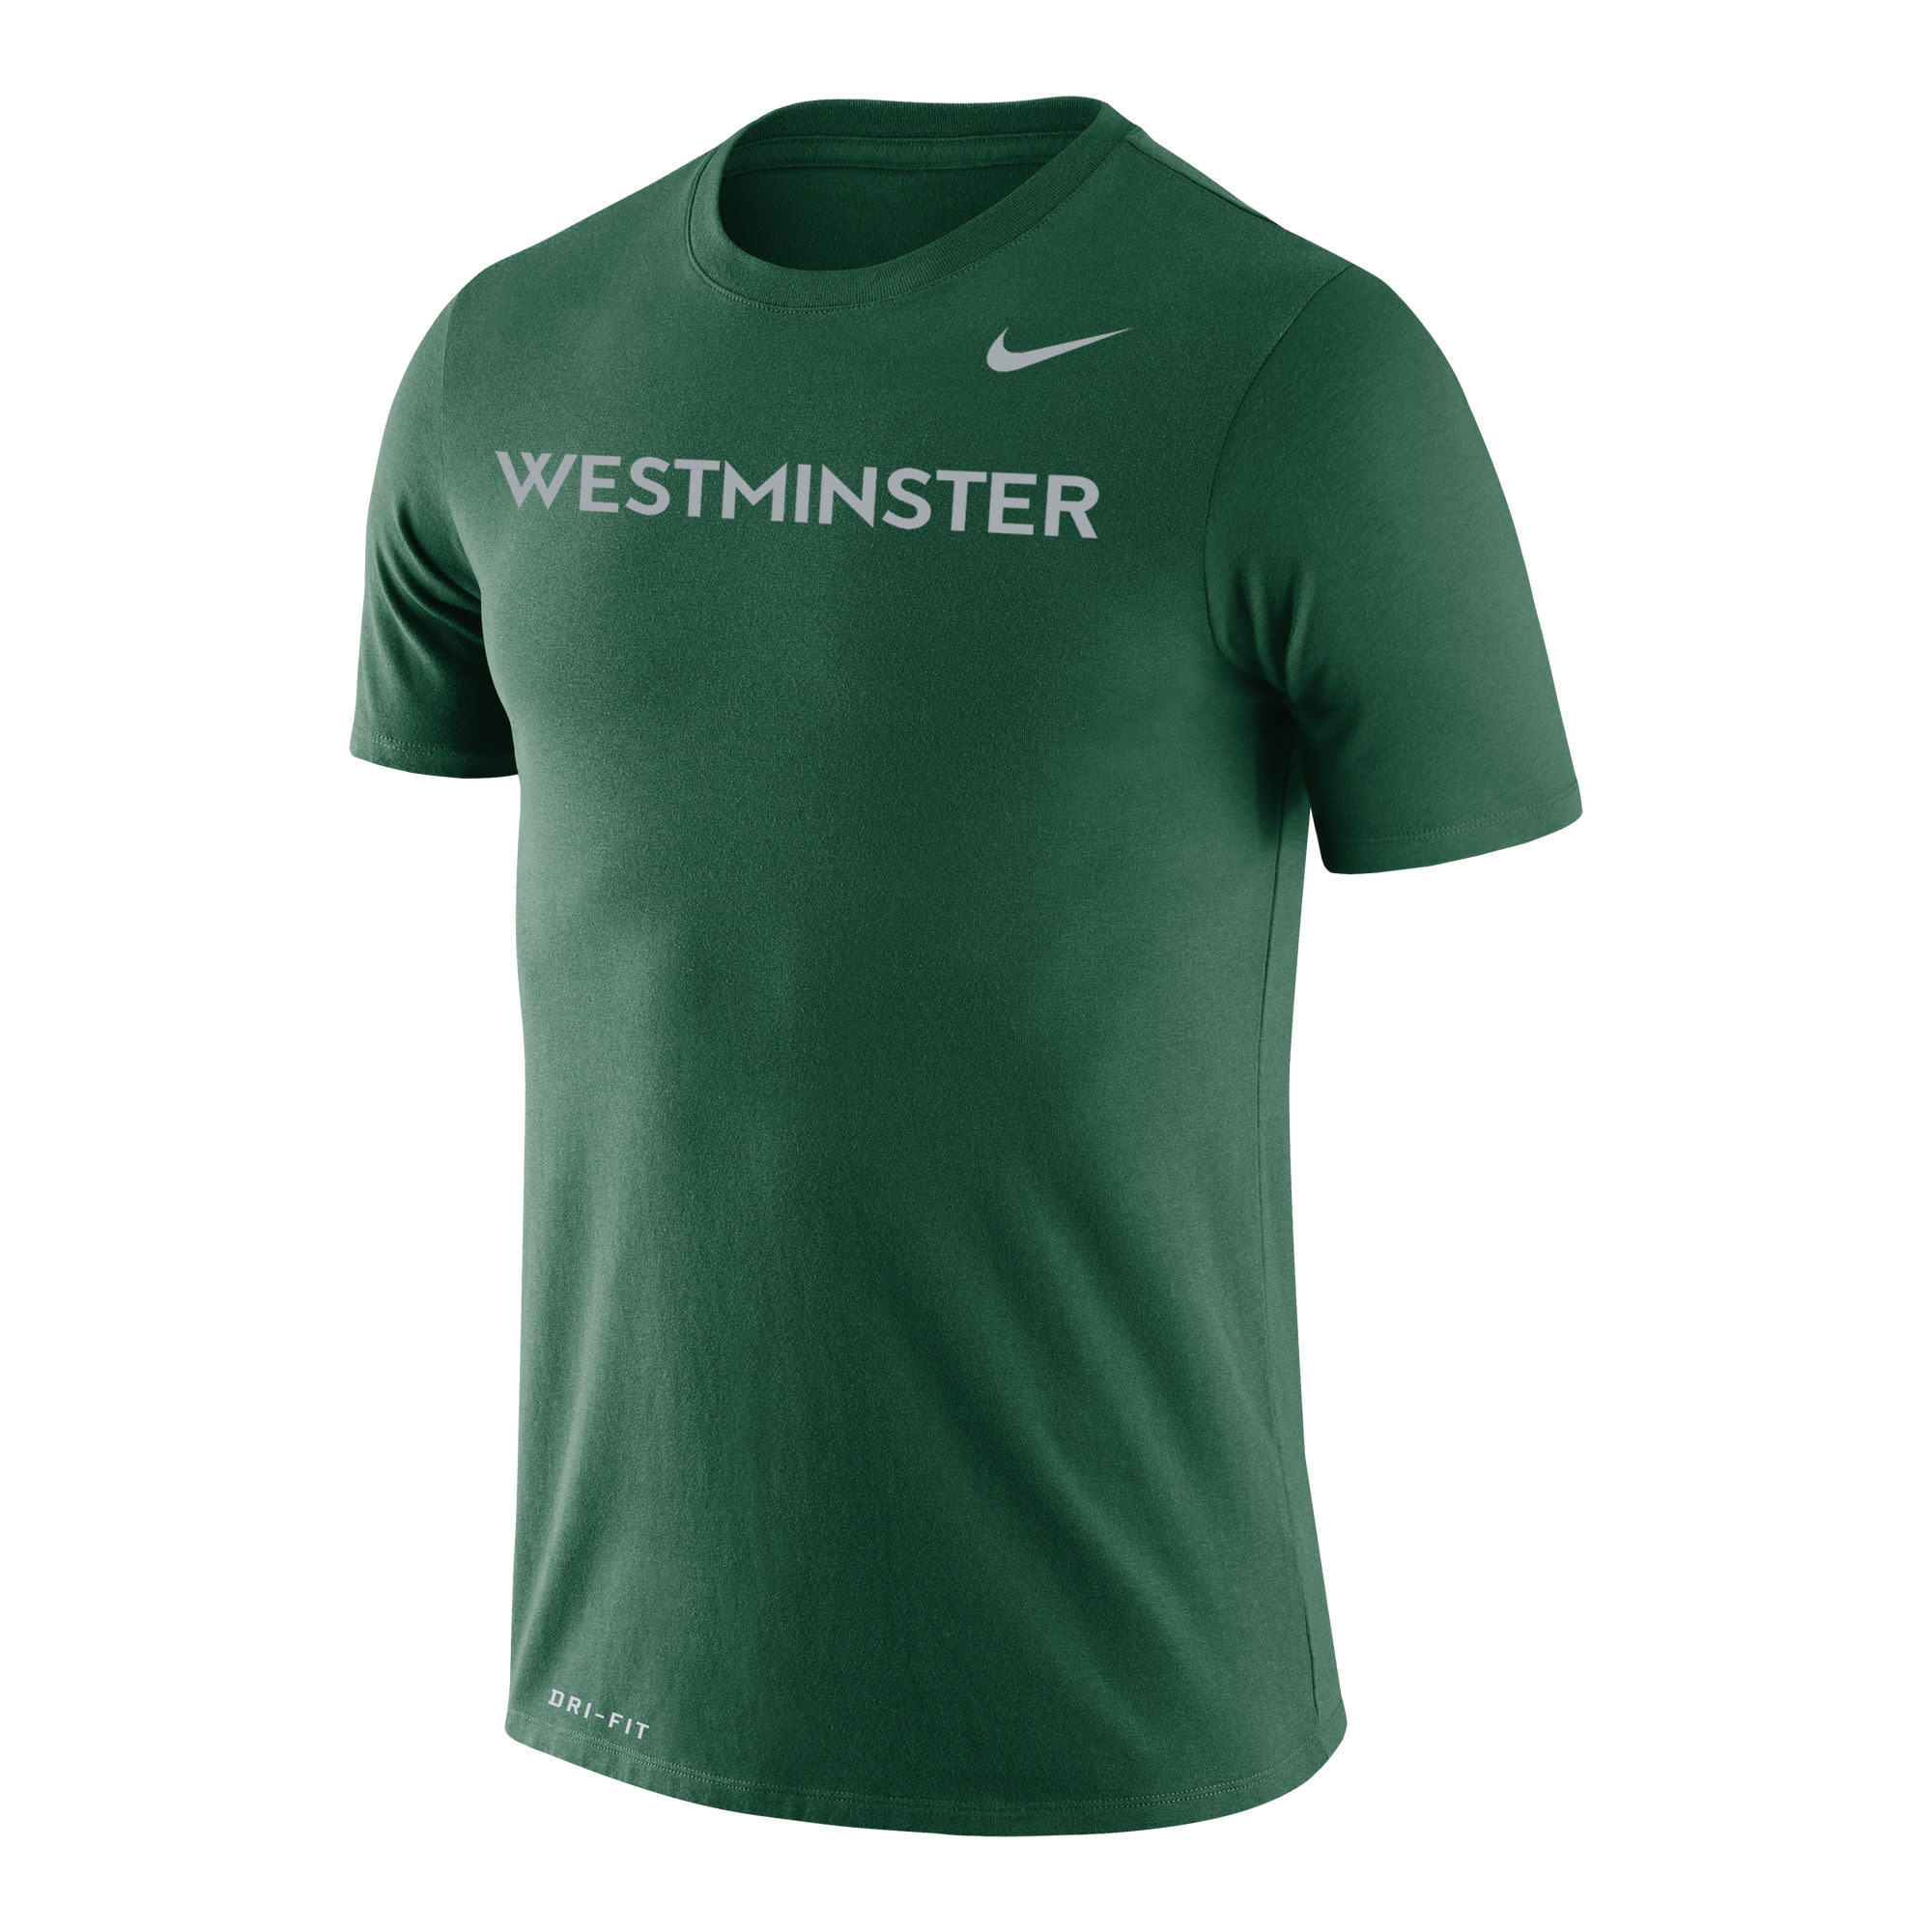 Nike T: Men's Dri-Fit Cotton SS w/silver Westminster